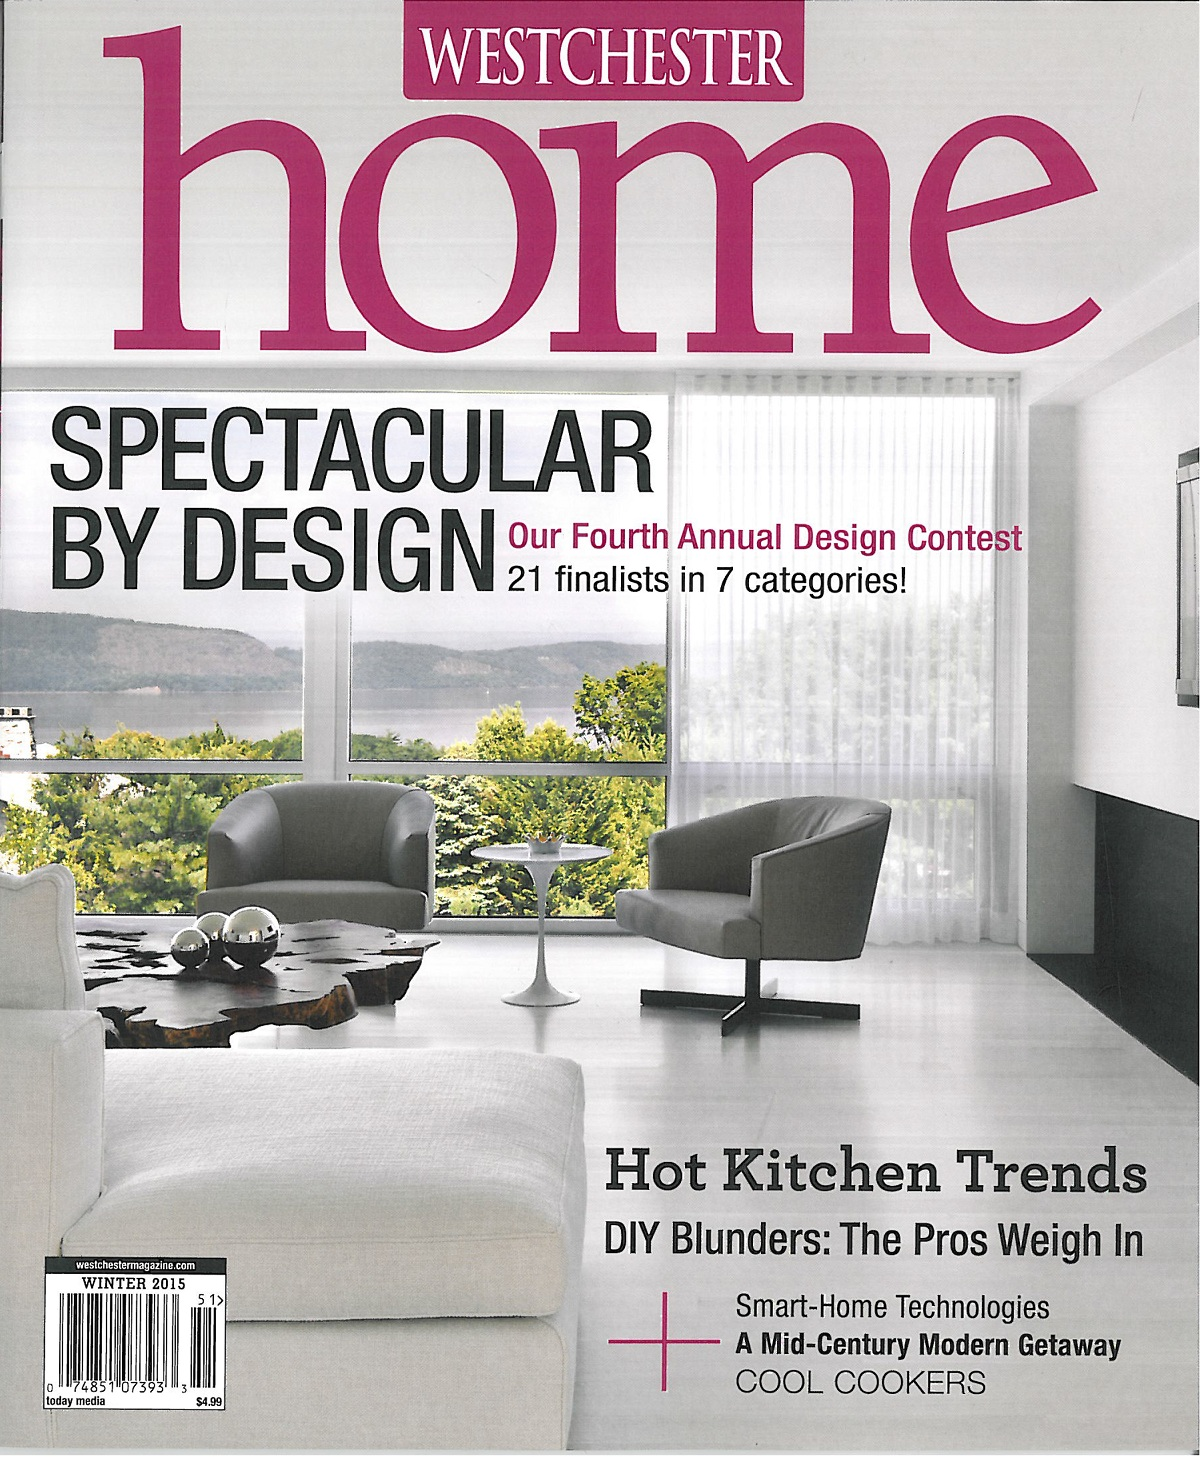 Westchester home magazine subscriptions renewals gifts Free interior design magazine subscriptions